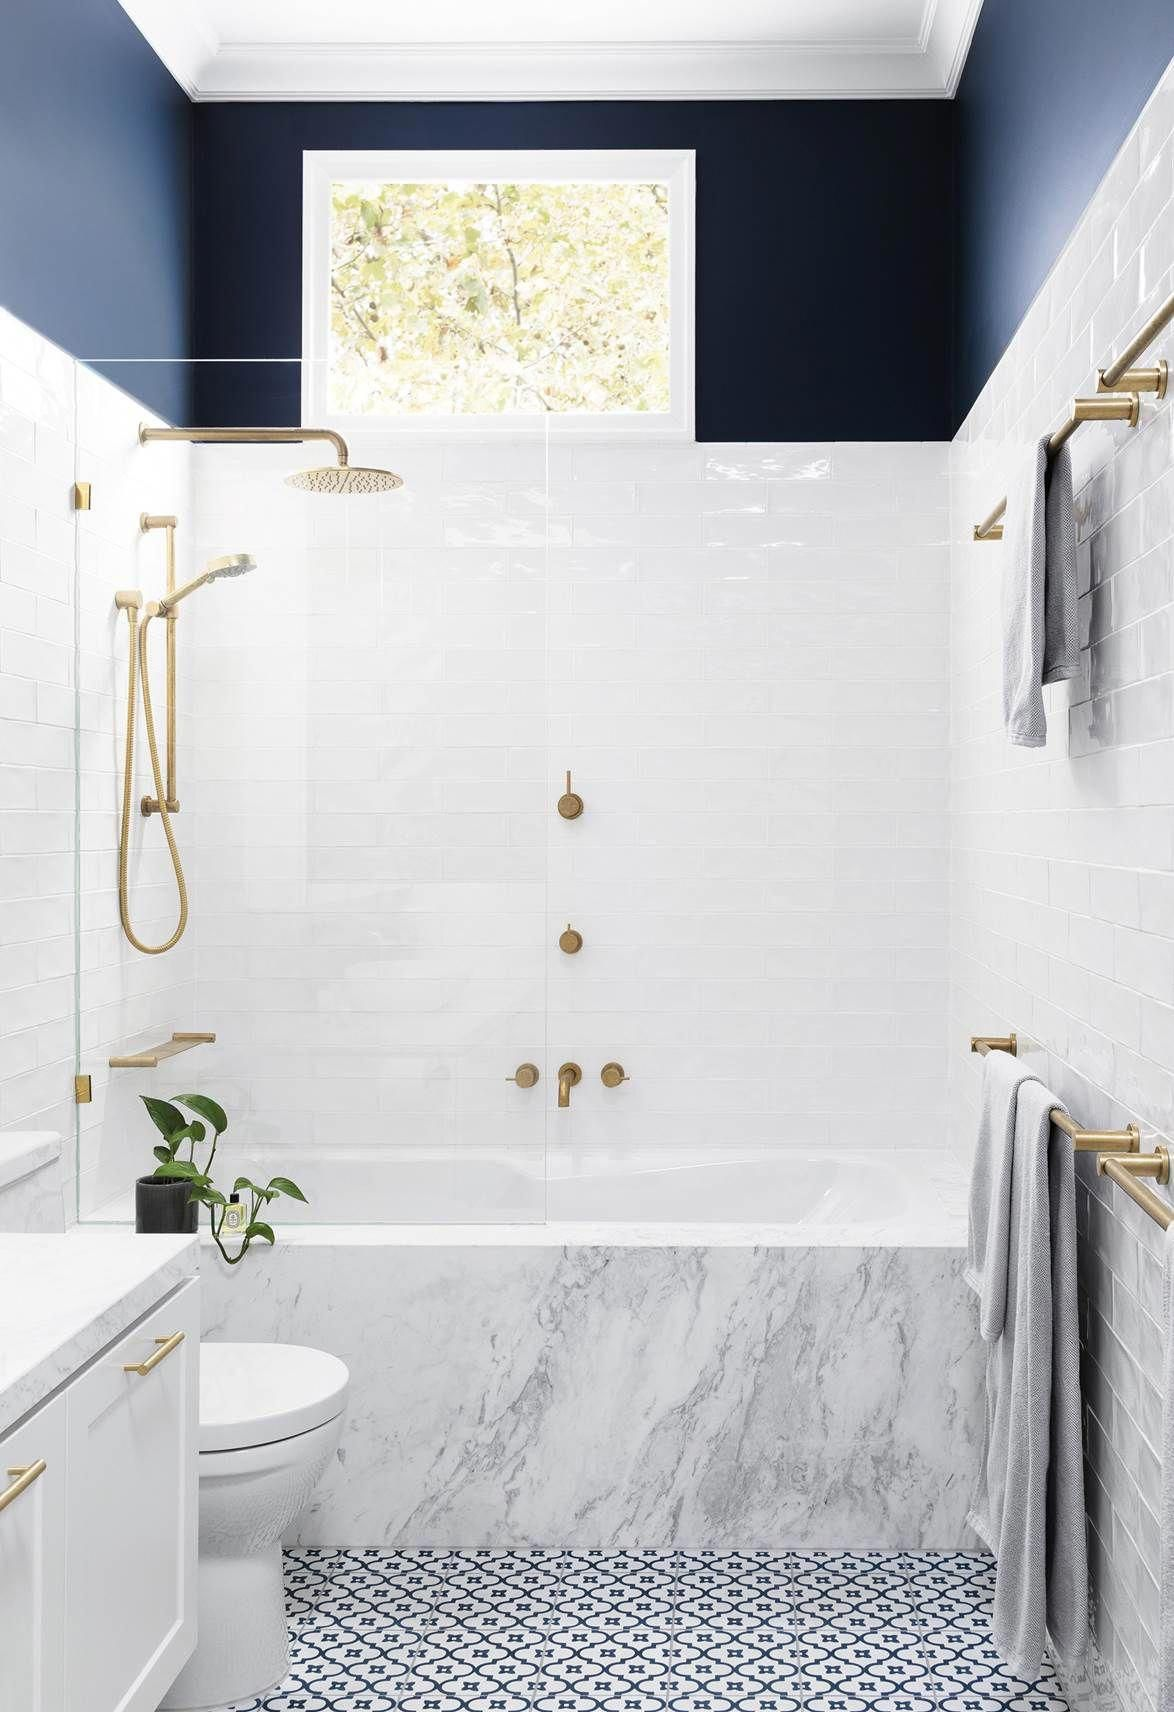 Bathing Bliss This Combined Bath Shower Fits Neatly Into The End Of The Space With A Frameless Glass Scr Small Bathroom Remodel Bathtub Design Small Bathroom